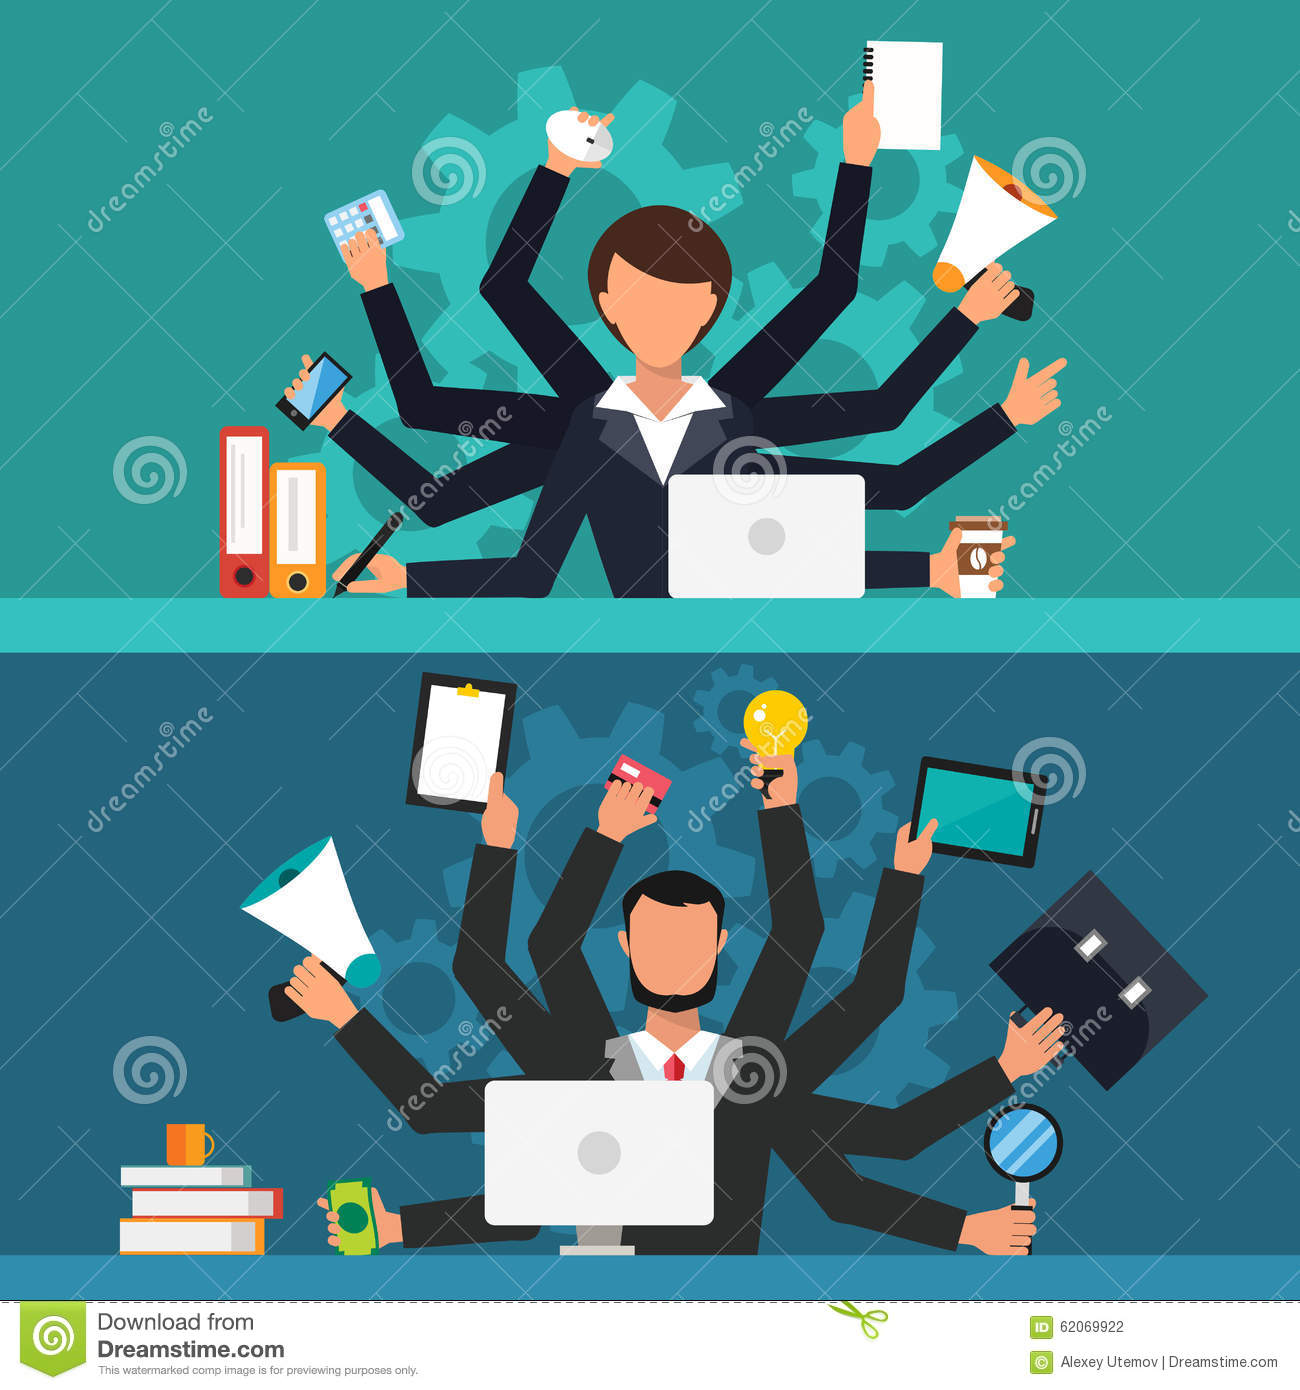 illustrative essay on stress View essay - illustration essay from eng 112 at tidewater community college everson 1 pierce everson mr bulleit english 111 7 september 2015 effective ways for dealing with stress stress increases.